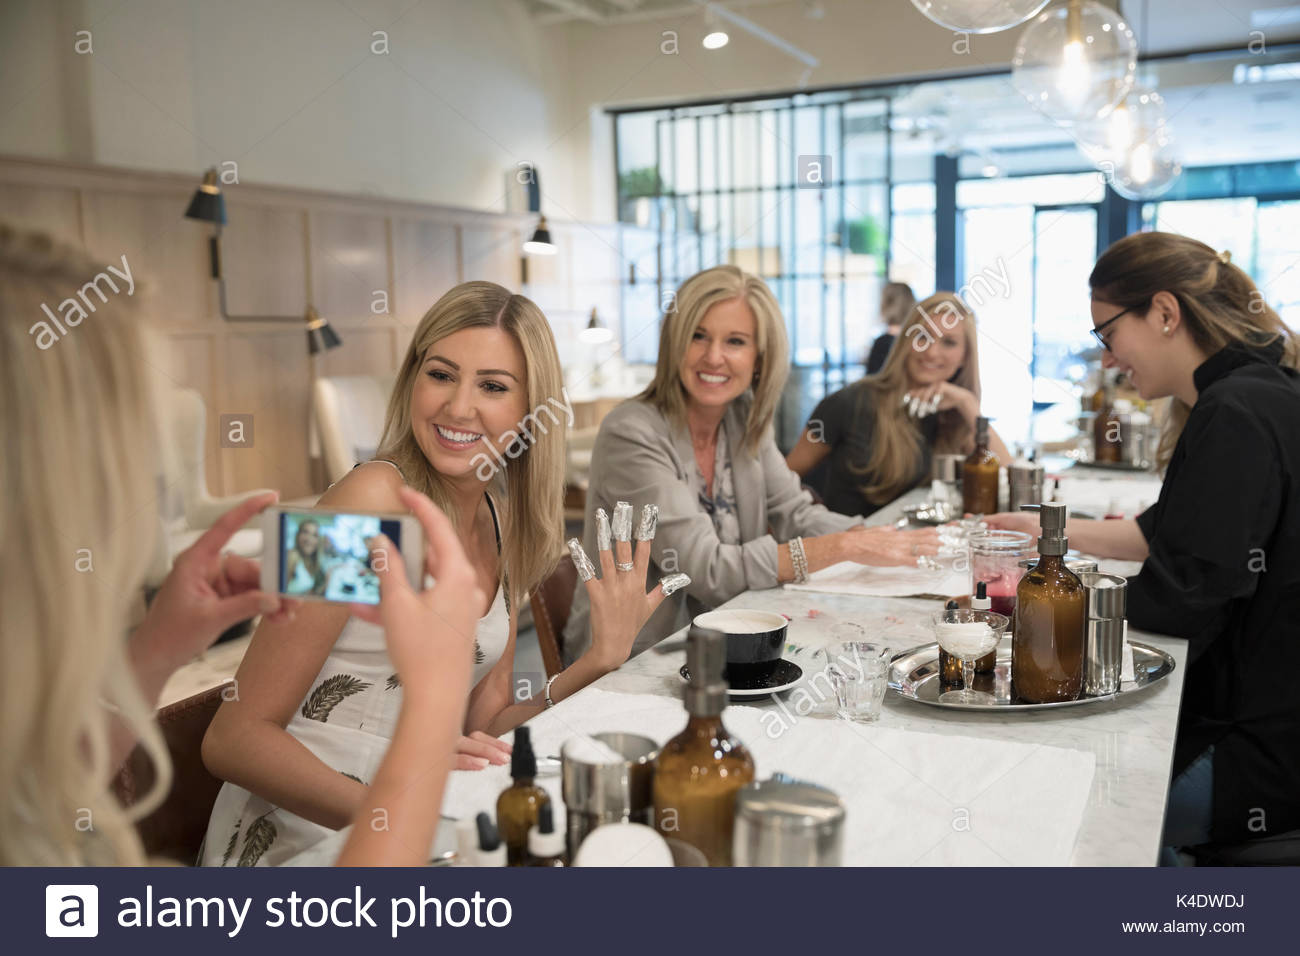 Smiling women friends getting gel manicures, posing for selfie in nail salon - Stock Image